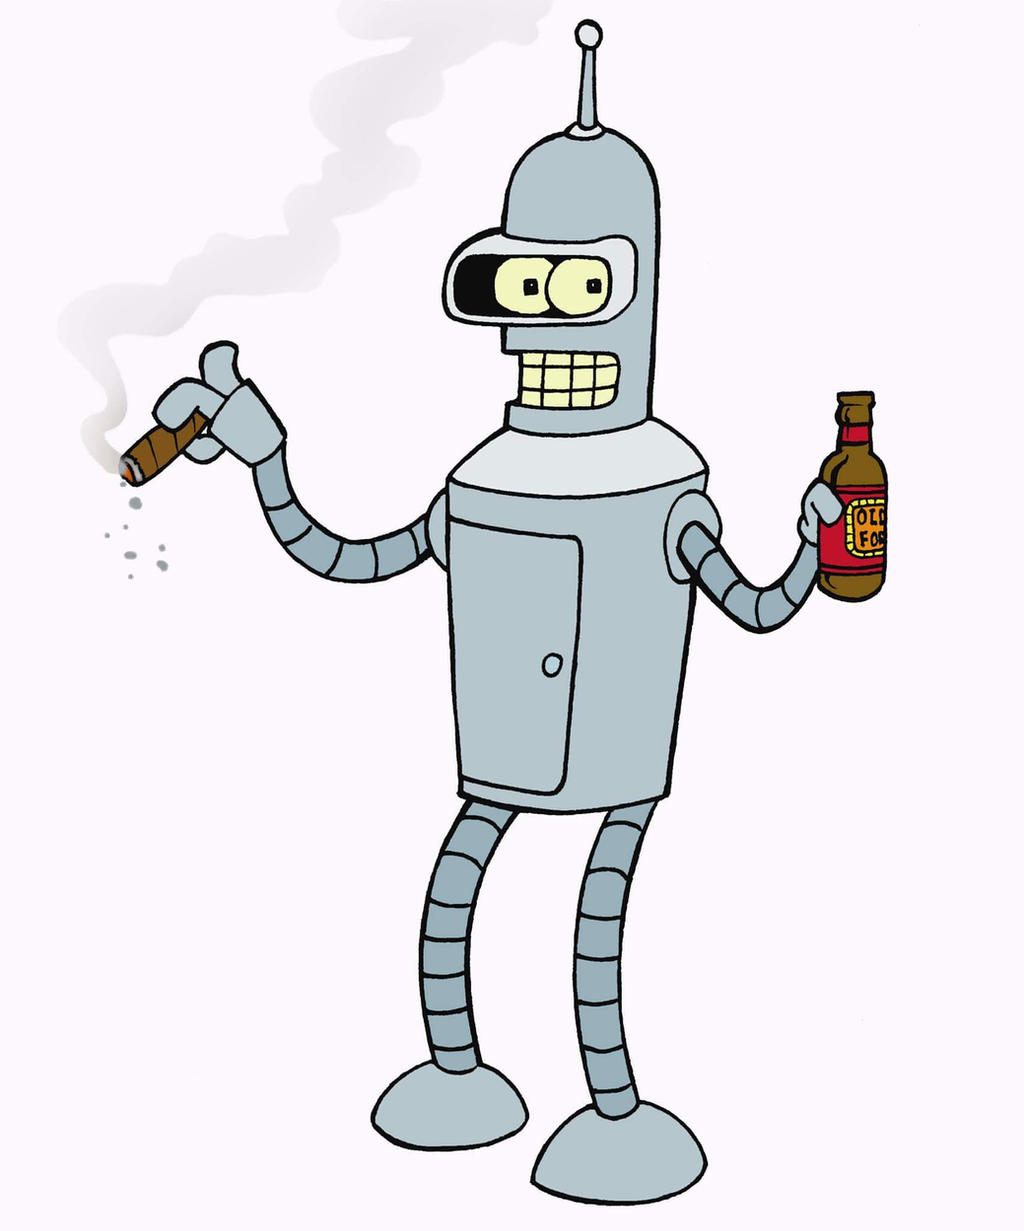 Futurama - Bender by mikedaws